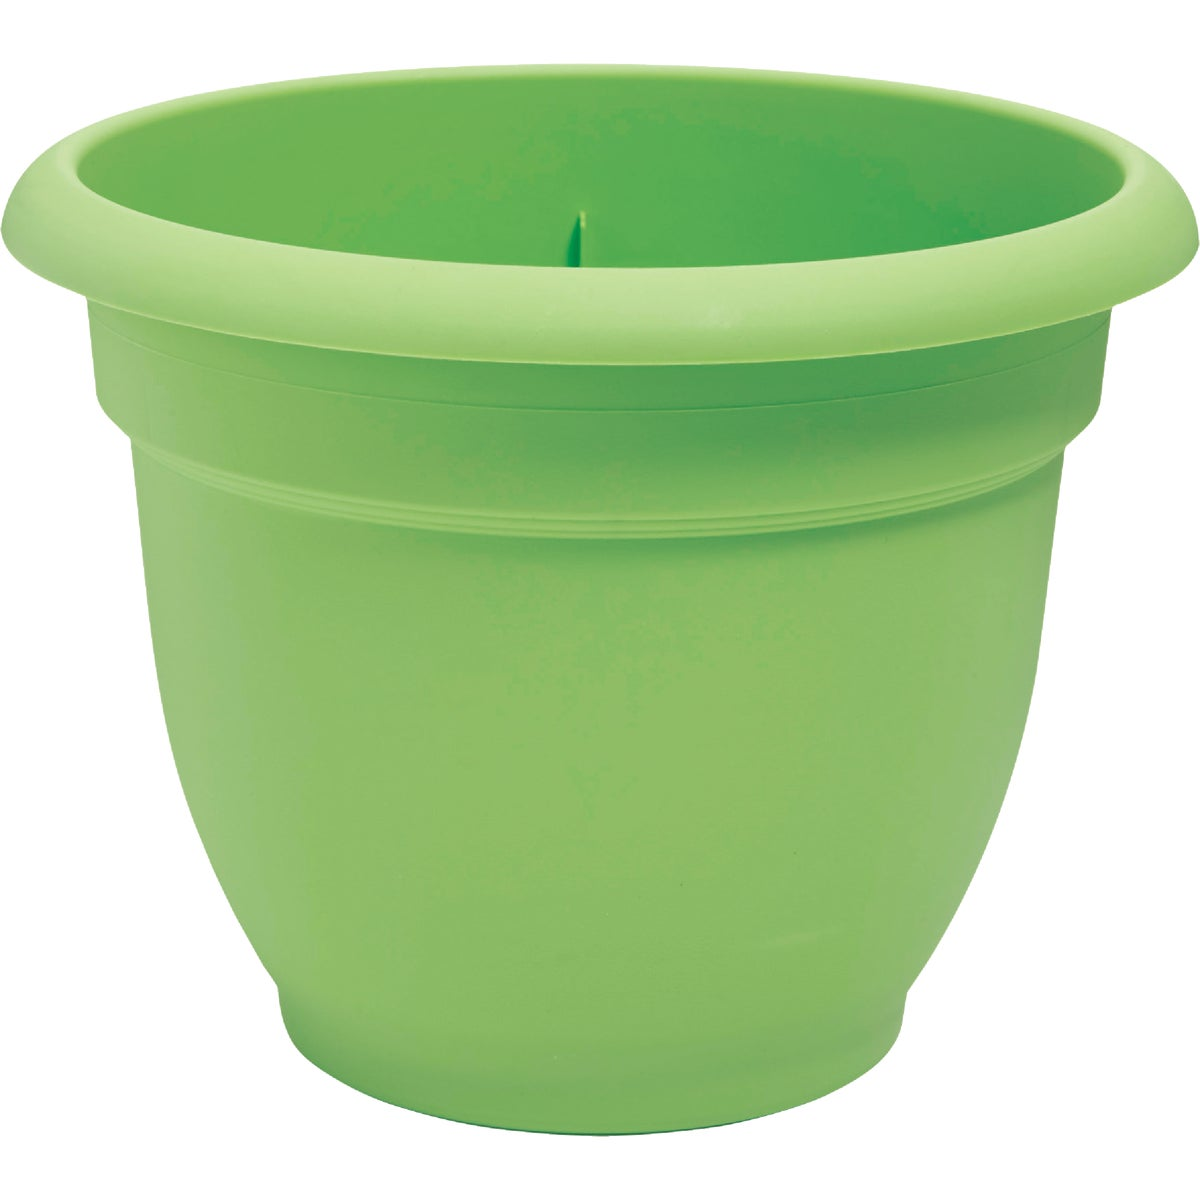 "6"" PERIDOT ARIANA POT - 465060-1001 by Fiskars Brands Inc"